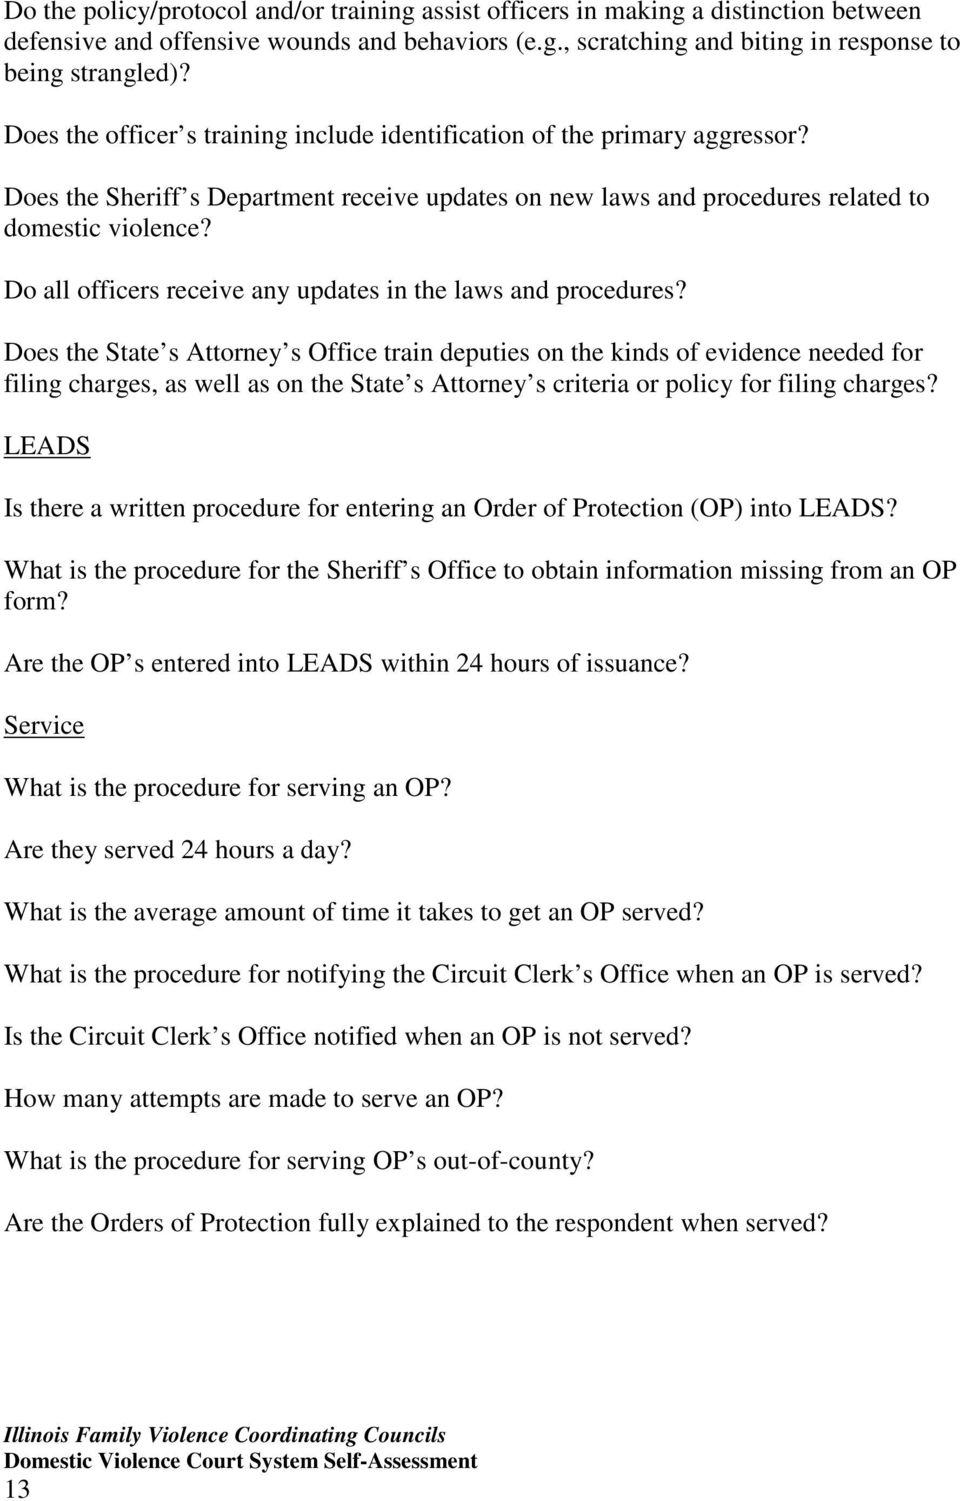 Do all officers receive any updates in the laws and procedures?